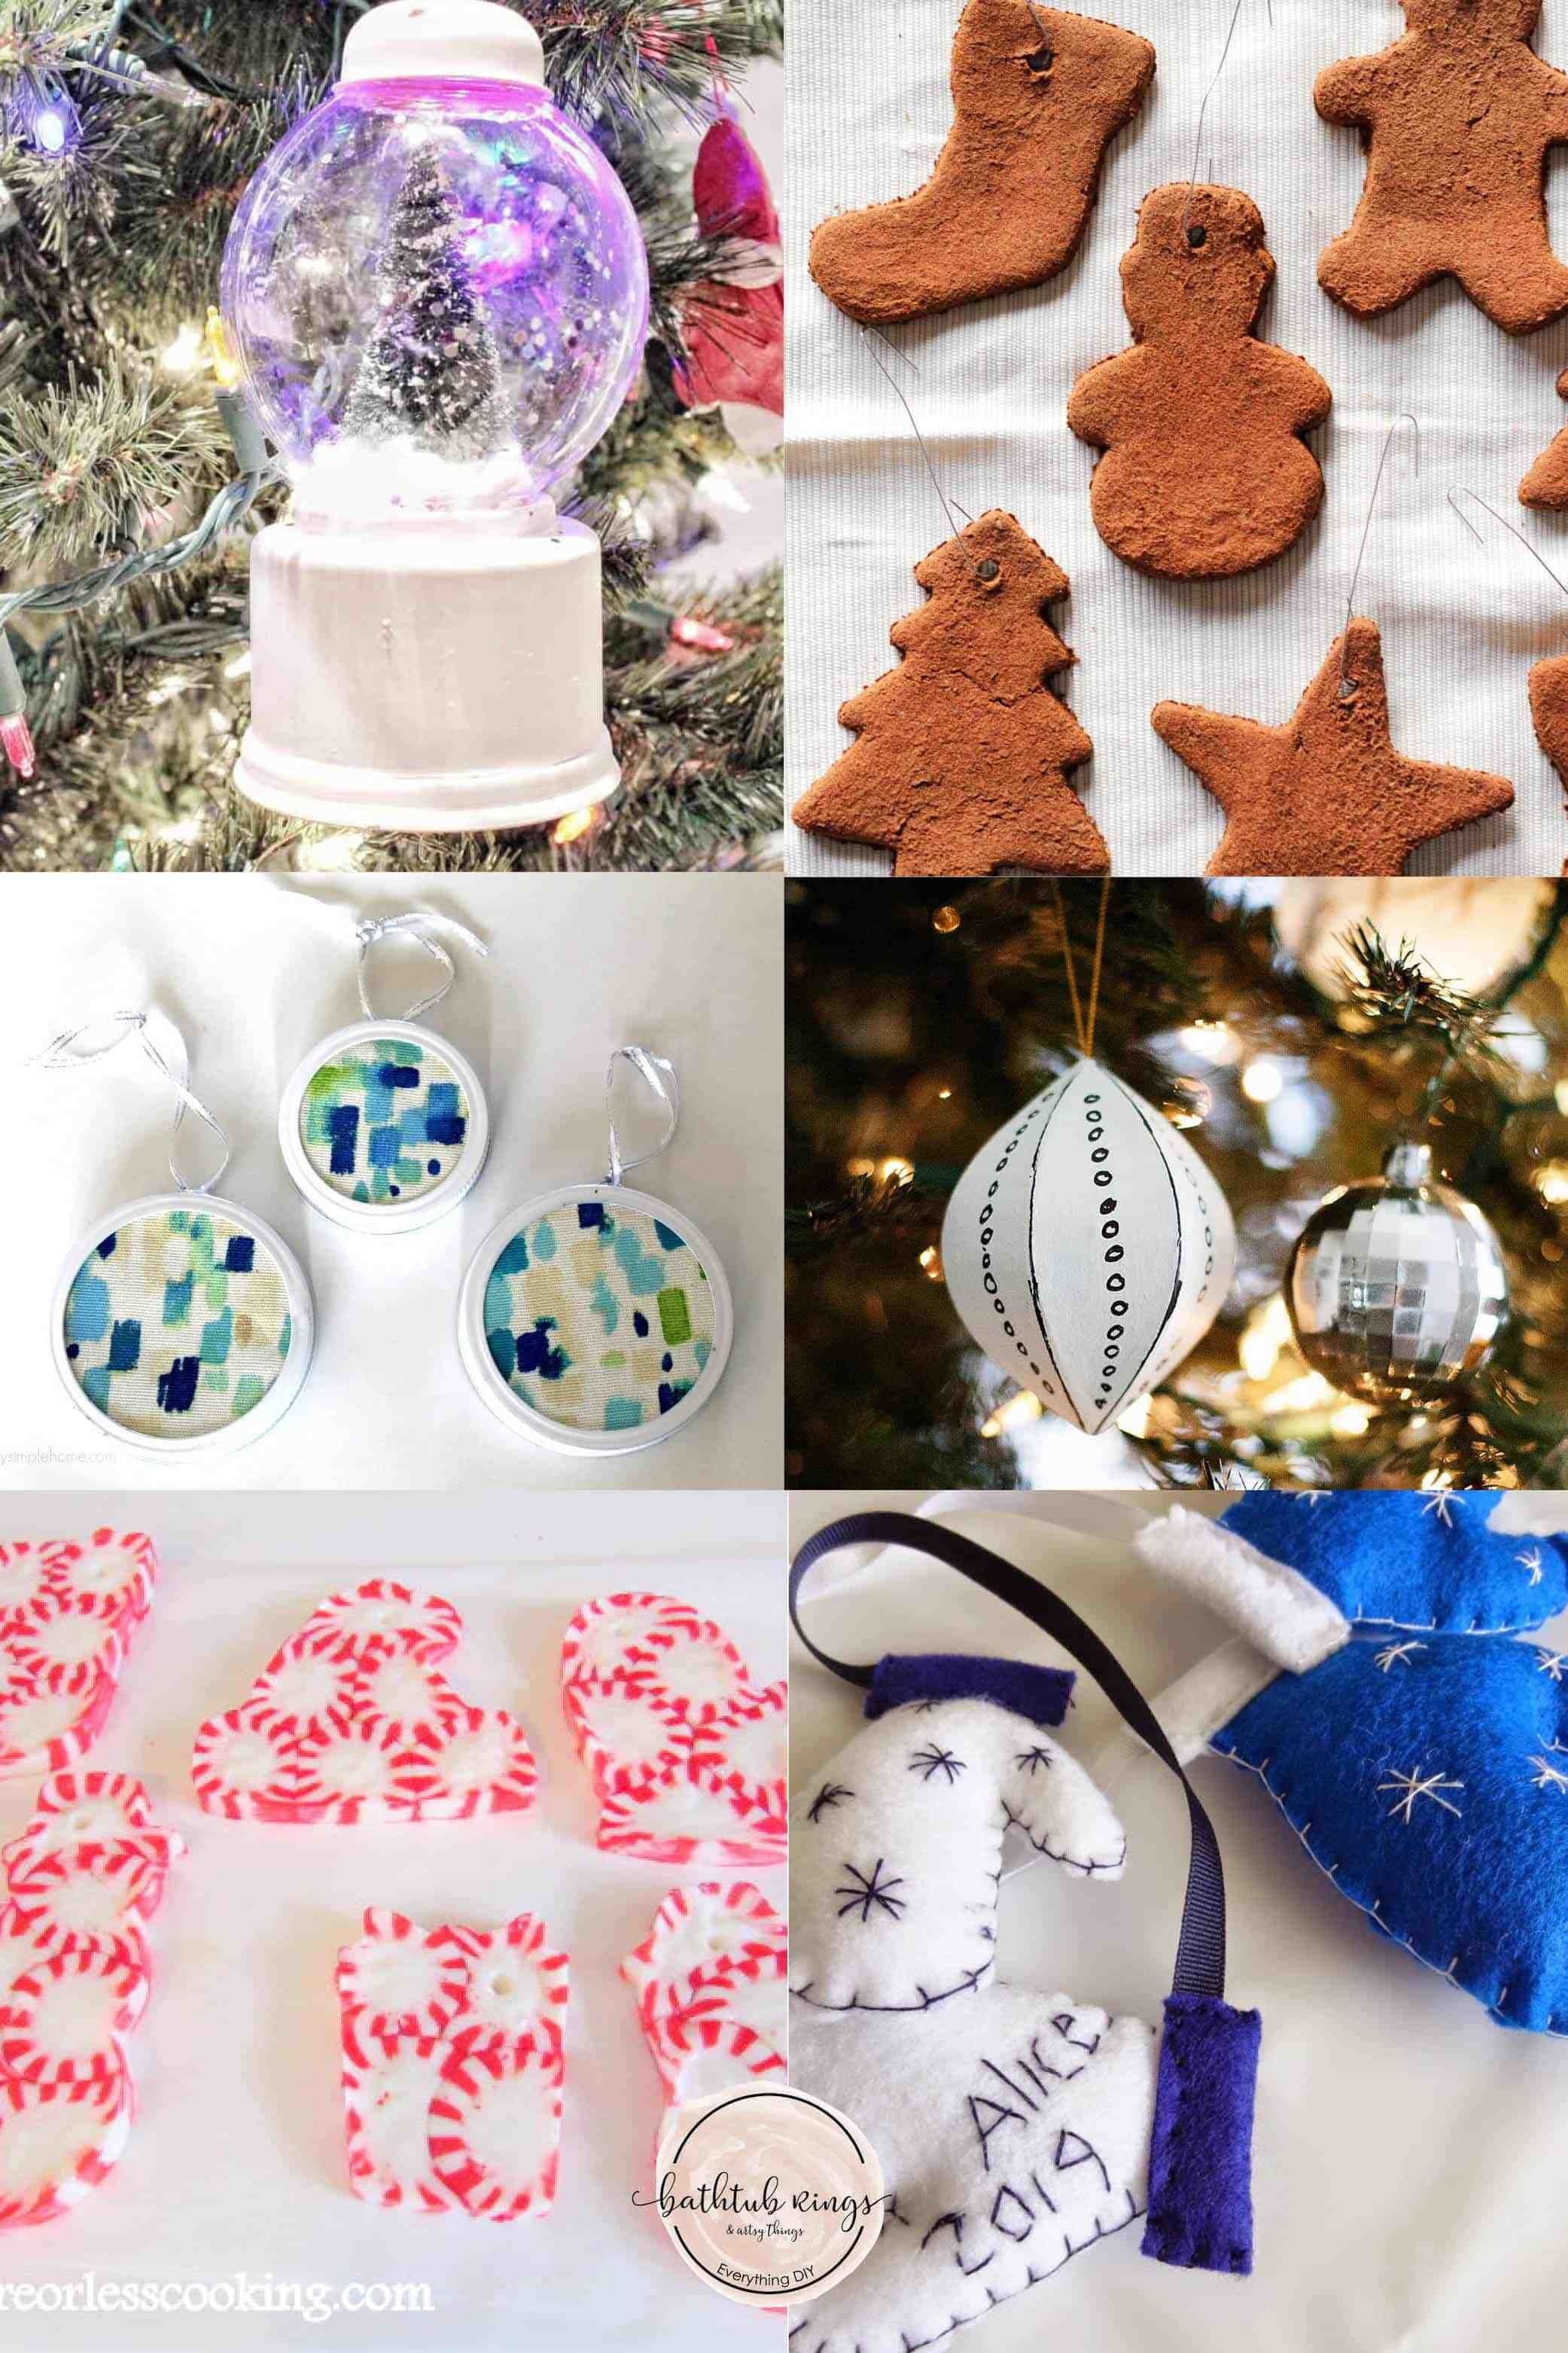 52 Amazing Handmade Christmas Ornaments That You Can Make Handmade Christmas Diy Christmas Ornaments Handmade Christmas Ornaments